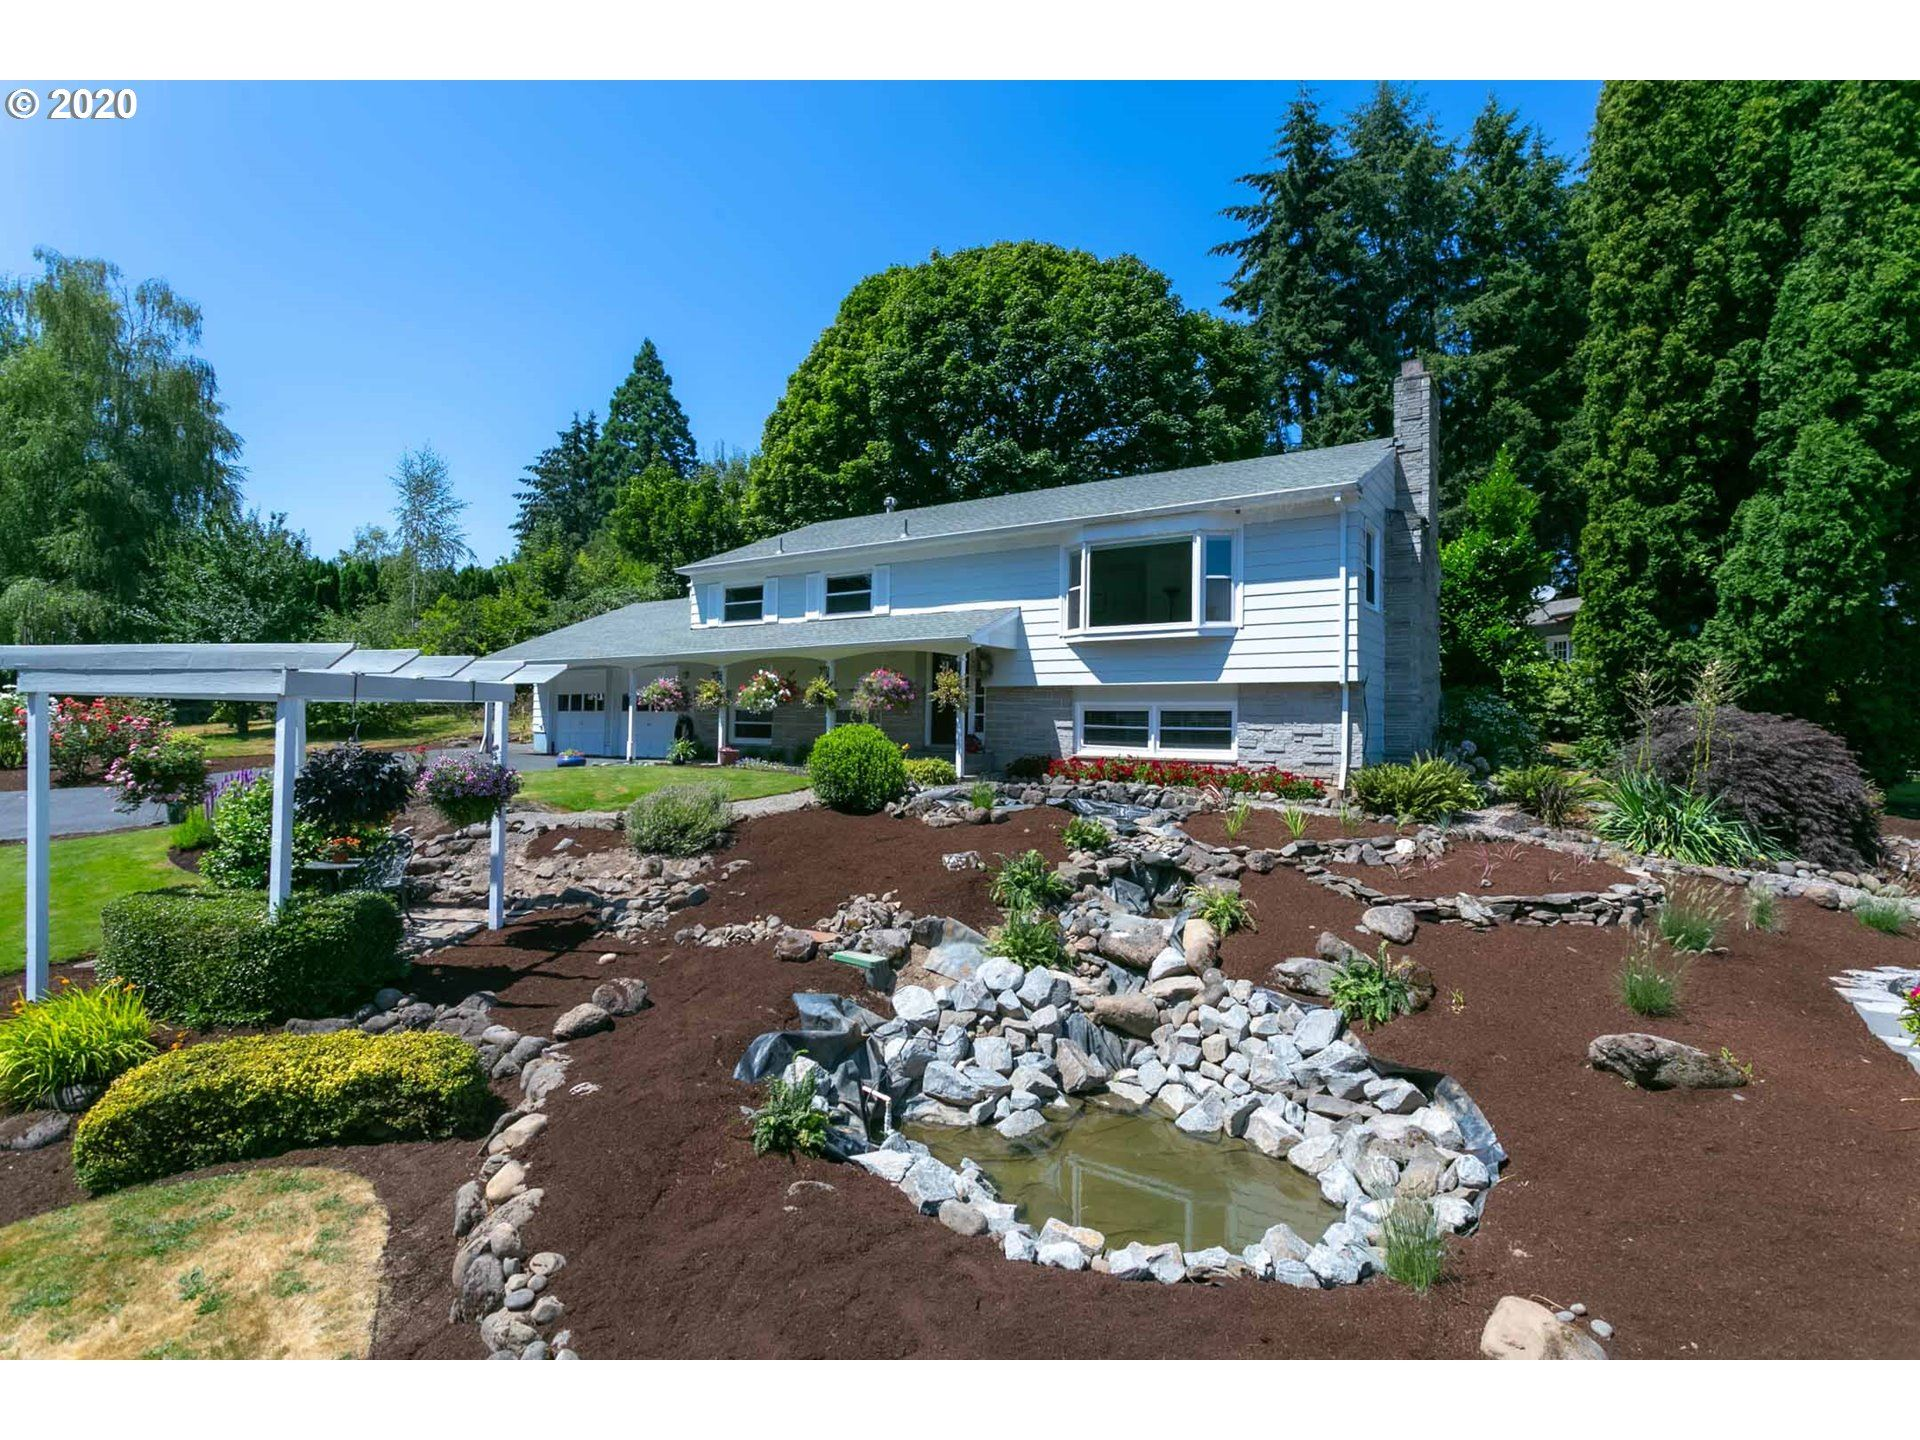 12020 SW ROSE VISTA DR, Portland, OR 97223 - MLS#: 20411780